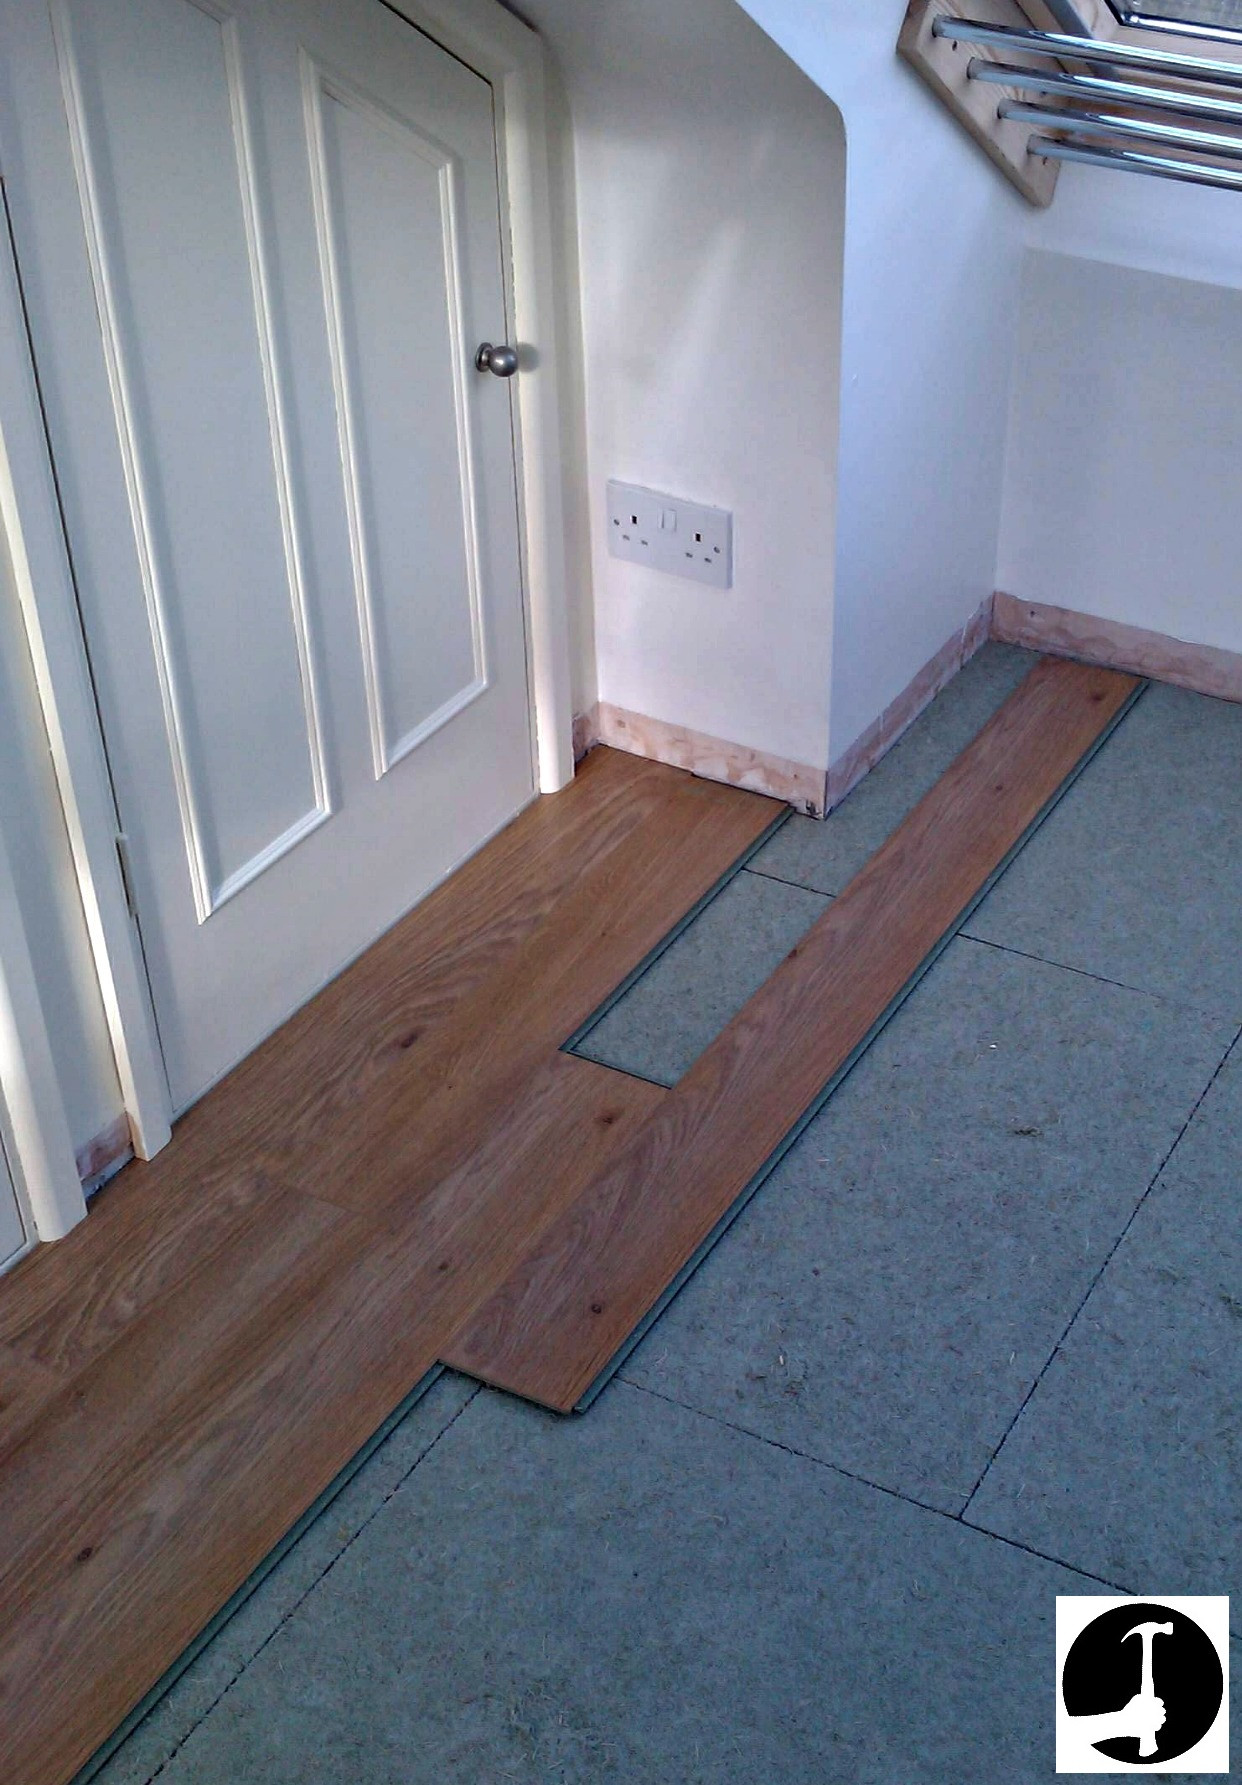 temporary hardwood floor over carpet of how to install laminate flooring with ease glued glue less systems regarding setting out laminate flooring